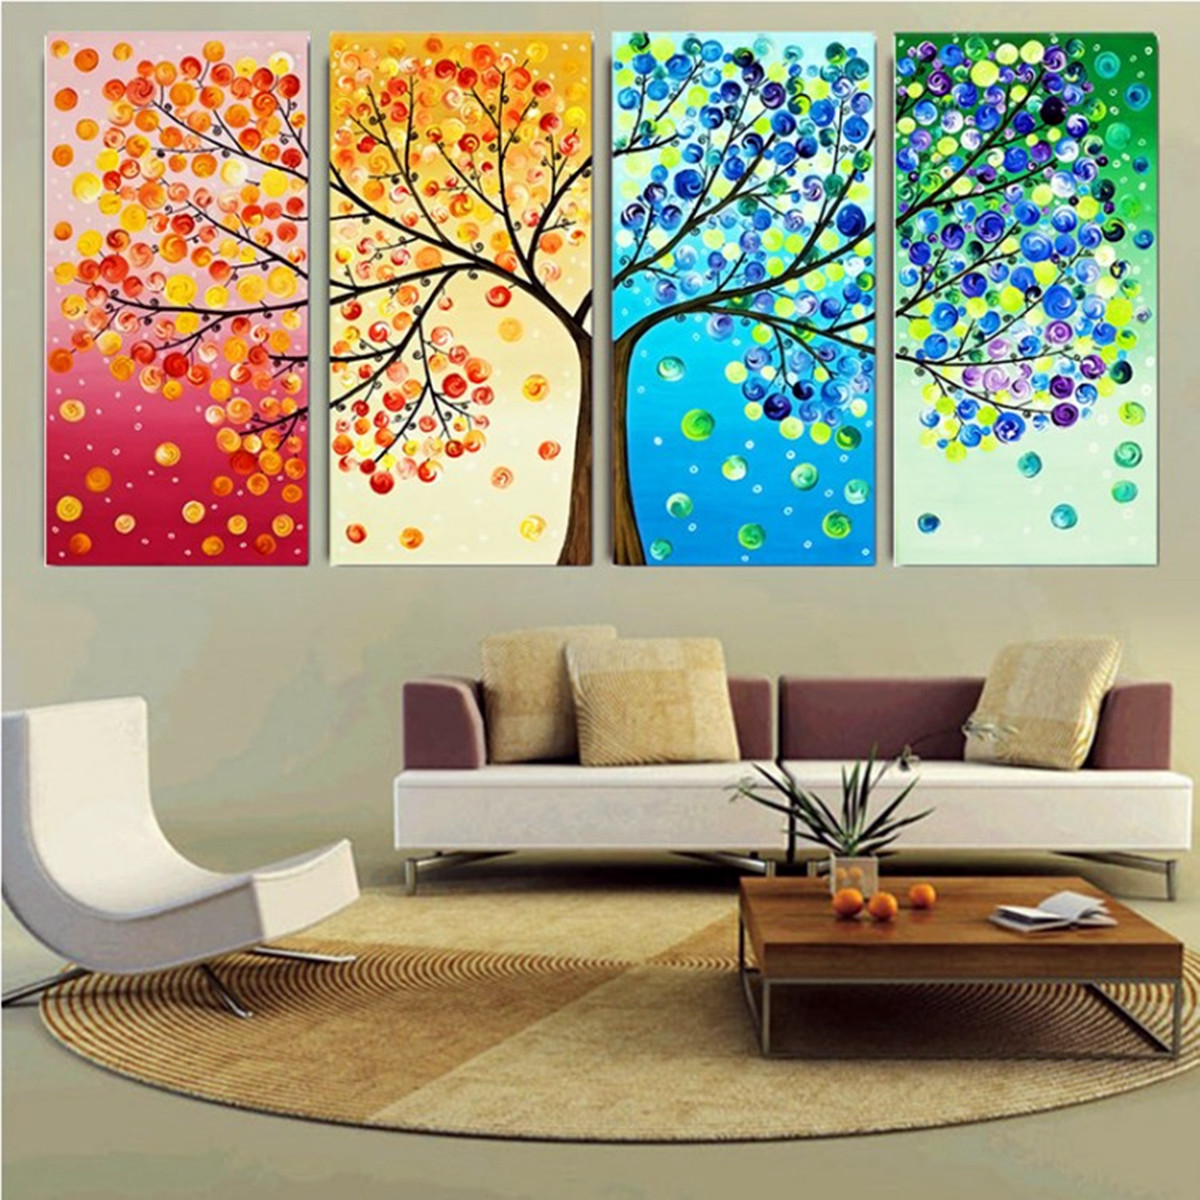 Diy handmade colorful season tree counted cross stitch embroidery kit home decor ebay - Home decoration pics ...